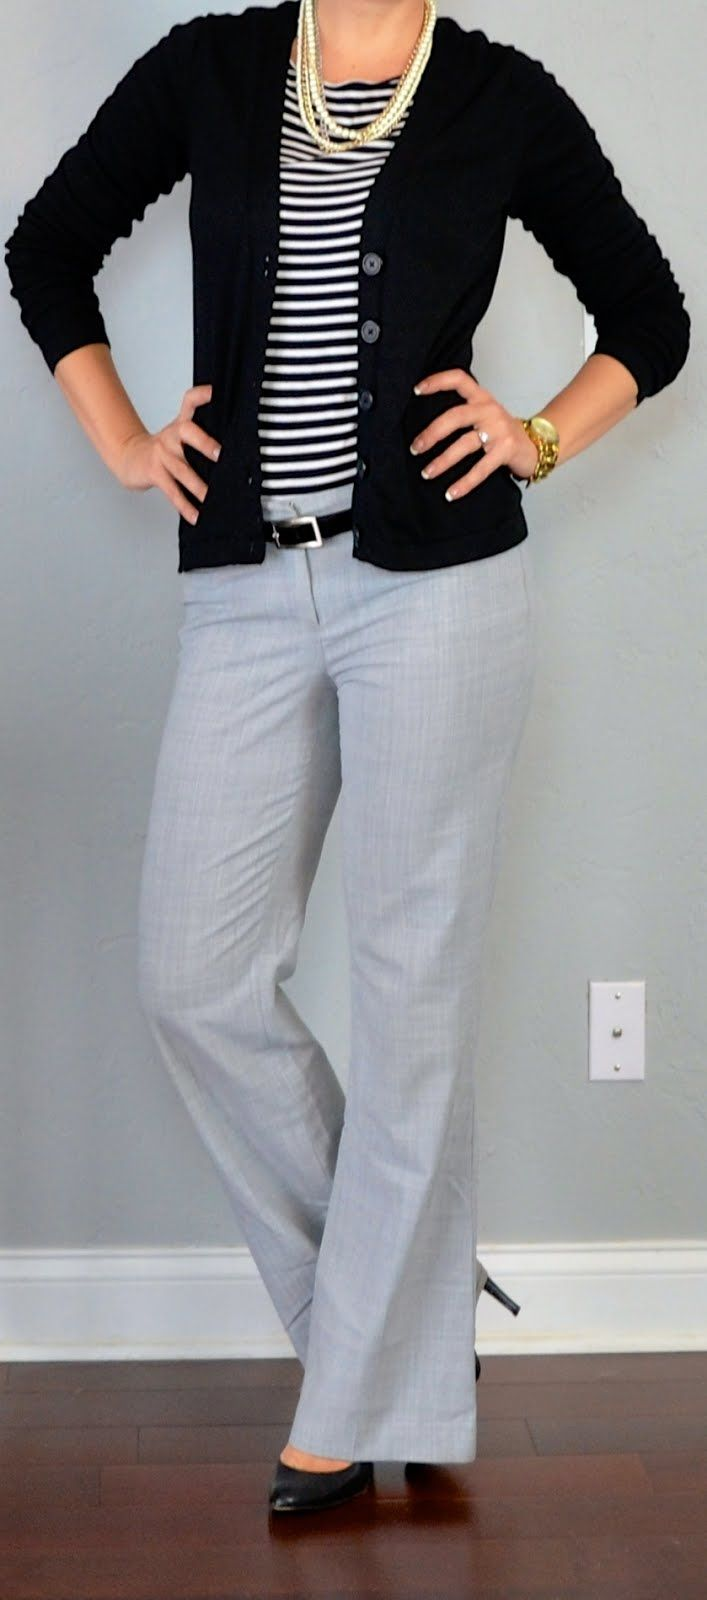 Black t shirt grey pants - Outfit Posts Outfit Posts Striped Shirt Black Cardigan Grey Editor